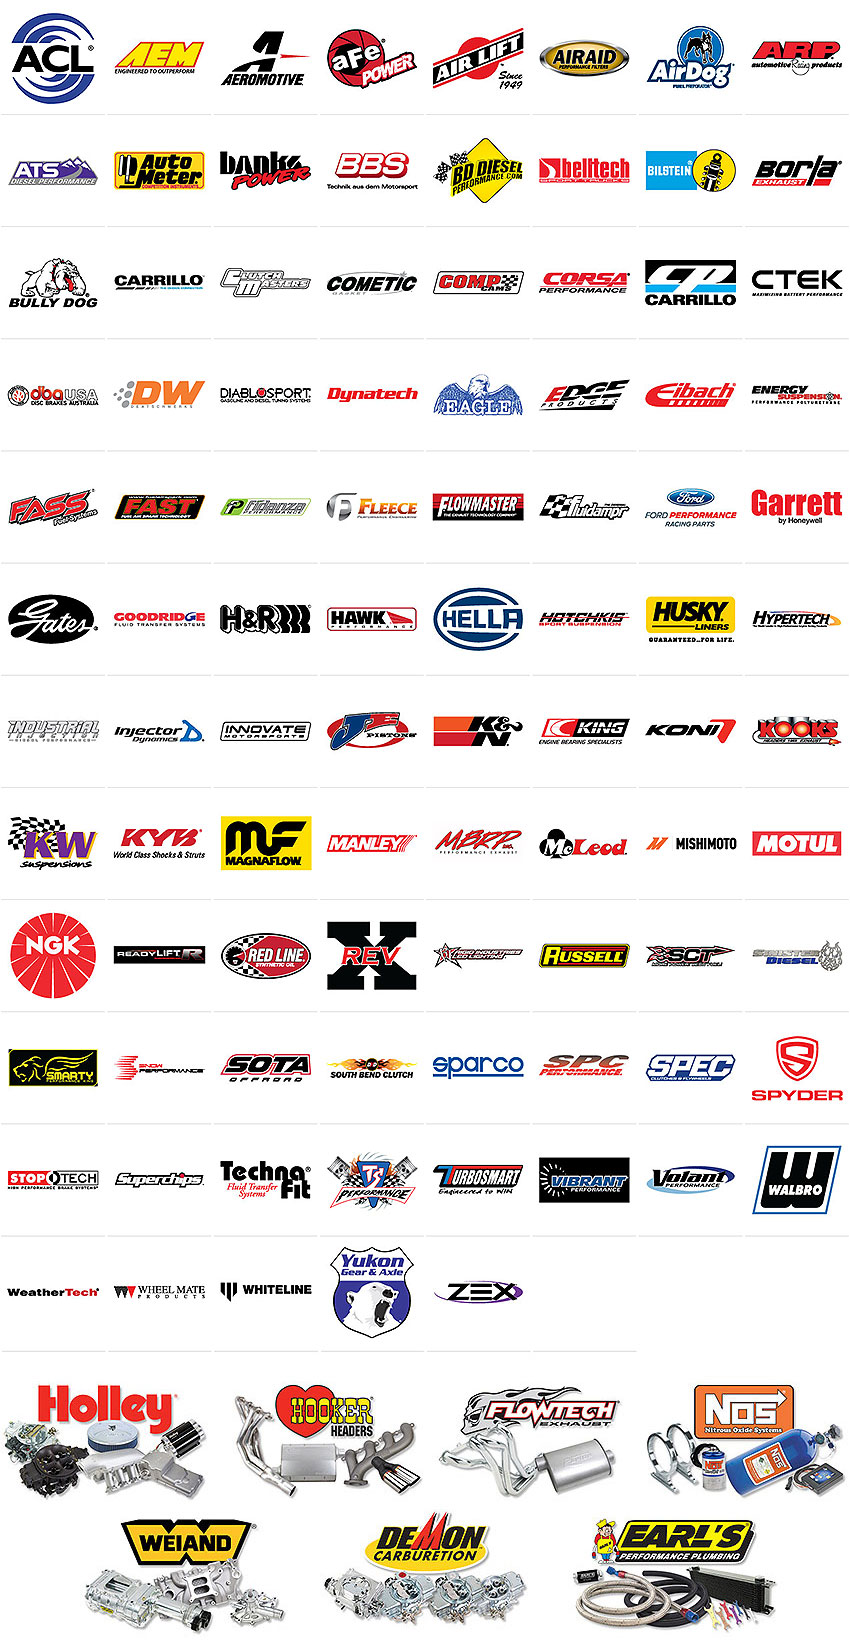 ACL, AEM, Aeromotive, aFe, Airaid, AirDog, ARP, ATS Diesel, AutoMeter, Banks Power, BD Diesel, Belltech, Bilstein, Borla, Bully Dog, Carrillo, Clutch Masters, Cometic Gasket, CORSA Performance, CP Pistons, CTEK, DBA, DeatschWerks, DiabloSport, Dynatech, Eagle, Edge, Eibach, Energy Suspension, FASS Fuel Systems, Fidanza, Fleece Performance, Flowmaster, Flowtech, Fluidampr, Ford Racing, Gates, Goodridge, H&R, Hawk Performance, Hella, Holley, Hooker, Hotchkis, Husky Liners, Hypertech, Industrial Injection, Injector Dynamics, Innovate Motorsports, JE Pistons, K&N Engineering, King Engine Bearings, KONI, Kooks Headers, KW, KYB, Magnaflow, Manley Performance, MBRP, McLeod Racing, Mishimoto, Motul, NGK, Range Technology, ReadyLift, Red Line, REV-X, Rigid Industries, Russell, SCT Performance, Sinister Diesel, Smarty, Snow Performance, SOTA, South Bend Clutch, SPARCO, SPC Performance, SPEC, Stoptech, Superchips, Technafit, TS Performance, Turbosmart, Vibrant, Volant, Walbro, WeatherTech, Wheel Mate, Whiteline, Yukon Gear & Axle